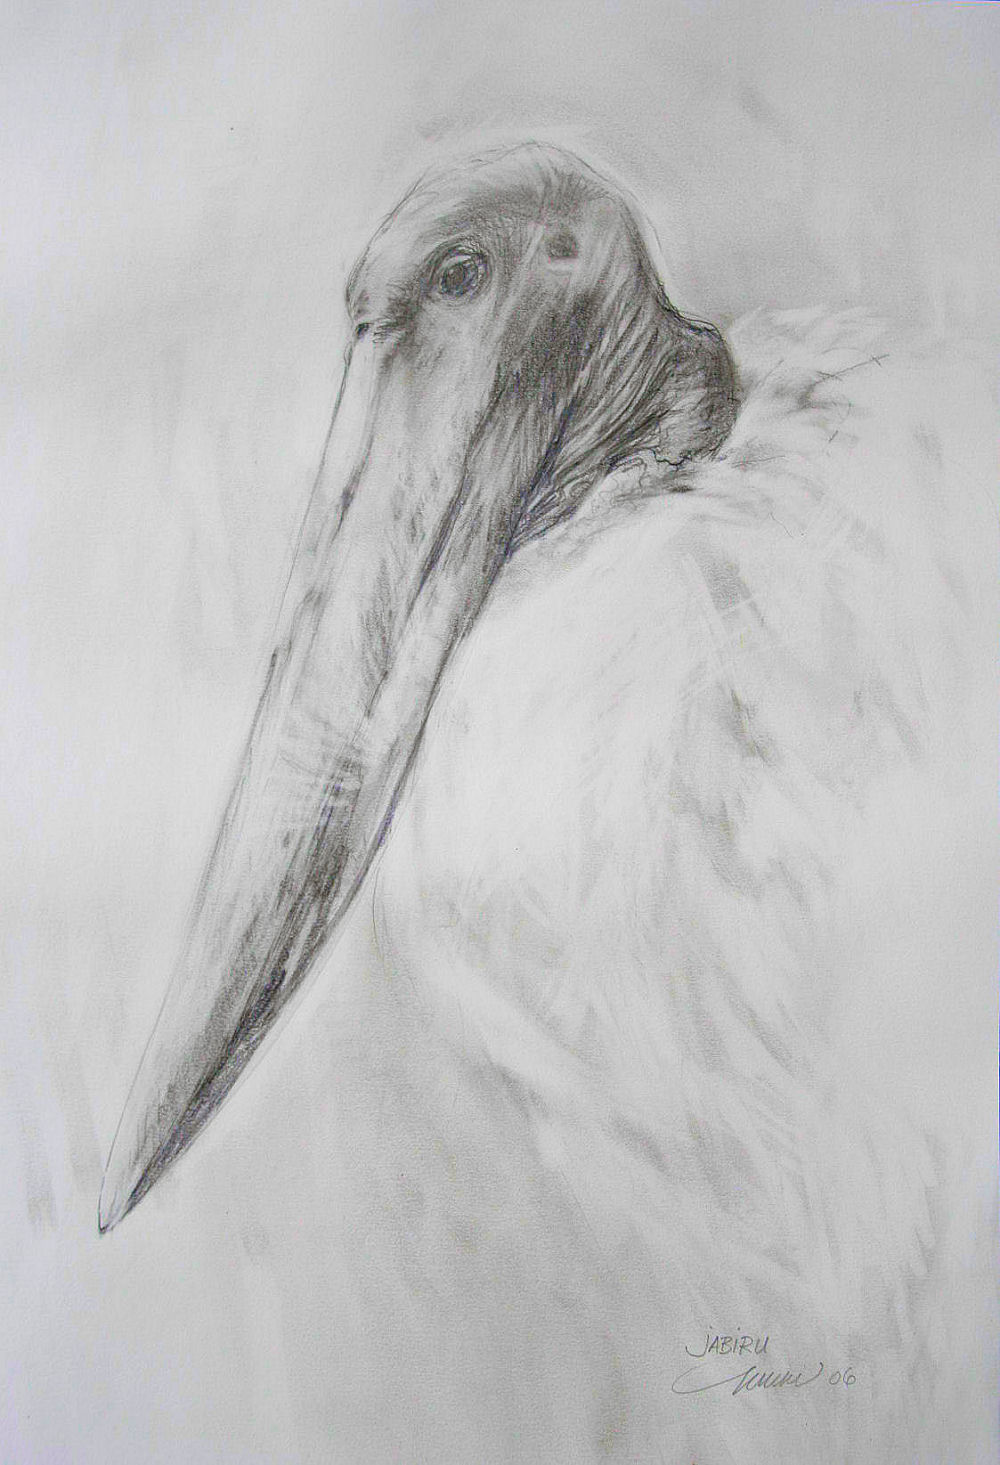 Jabiru at the Dallas World Aquarium, 24H x 18W inches graphite on paper